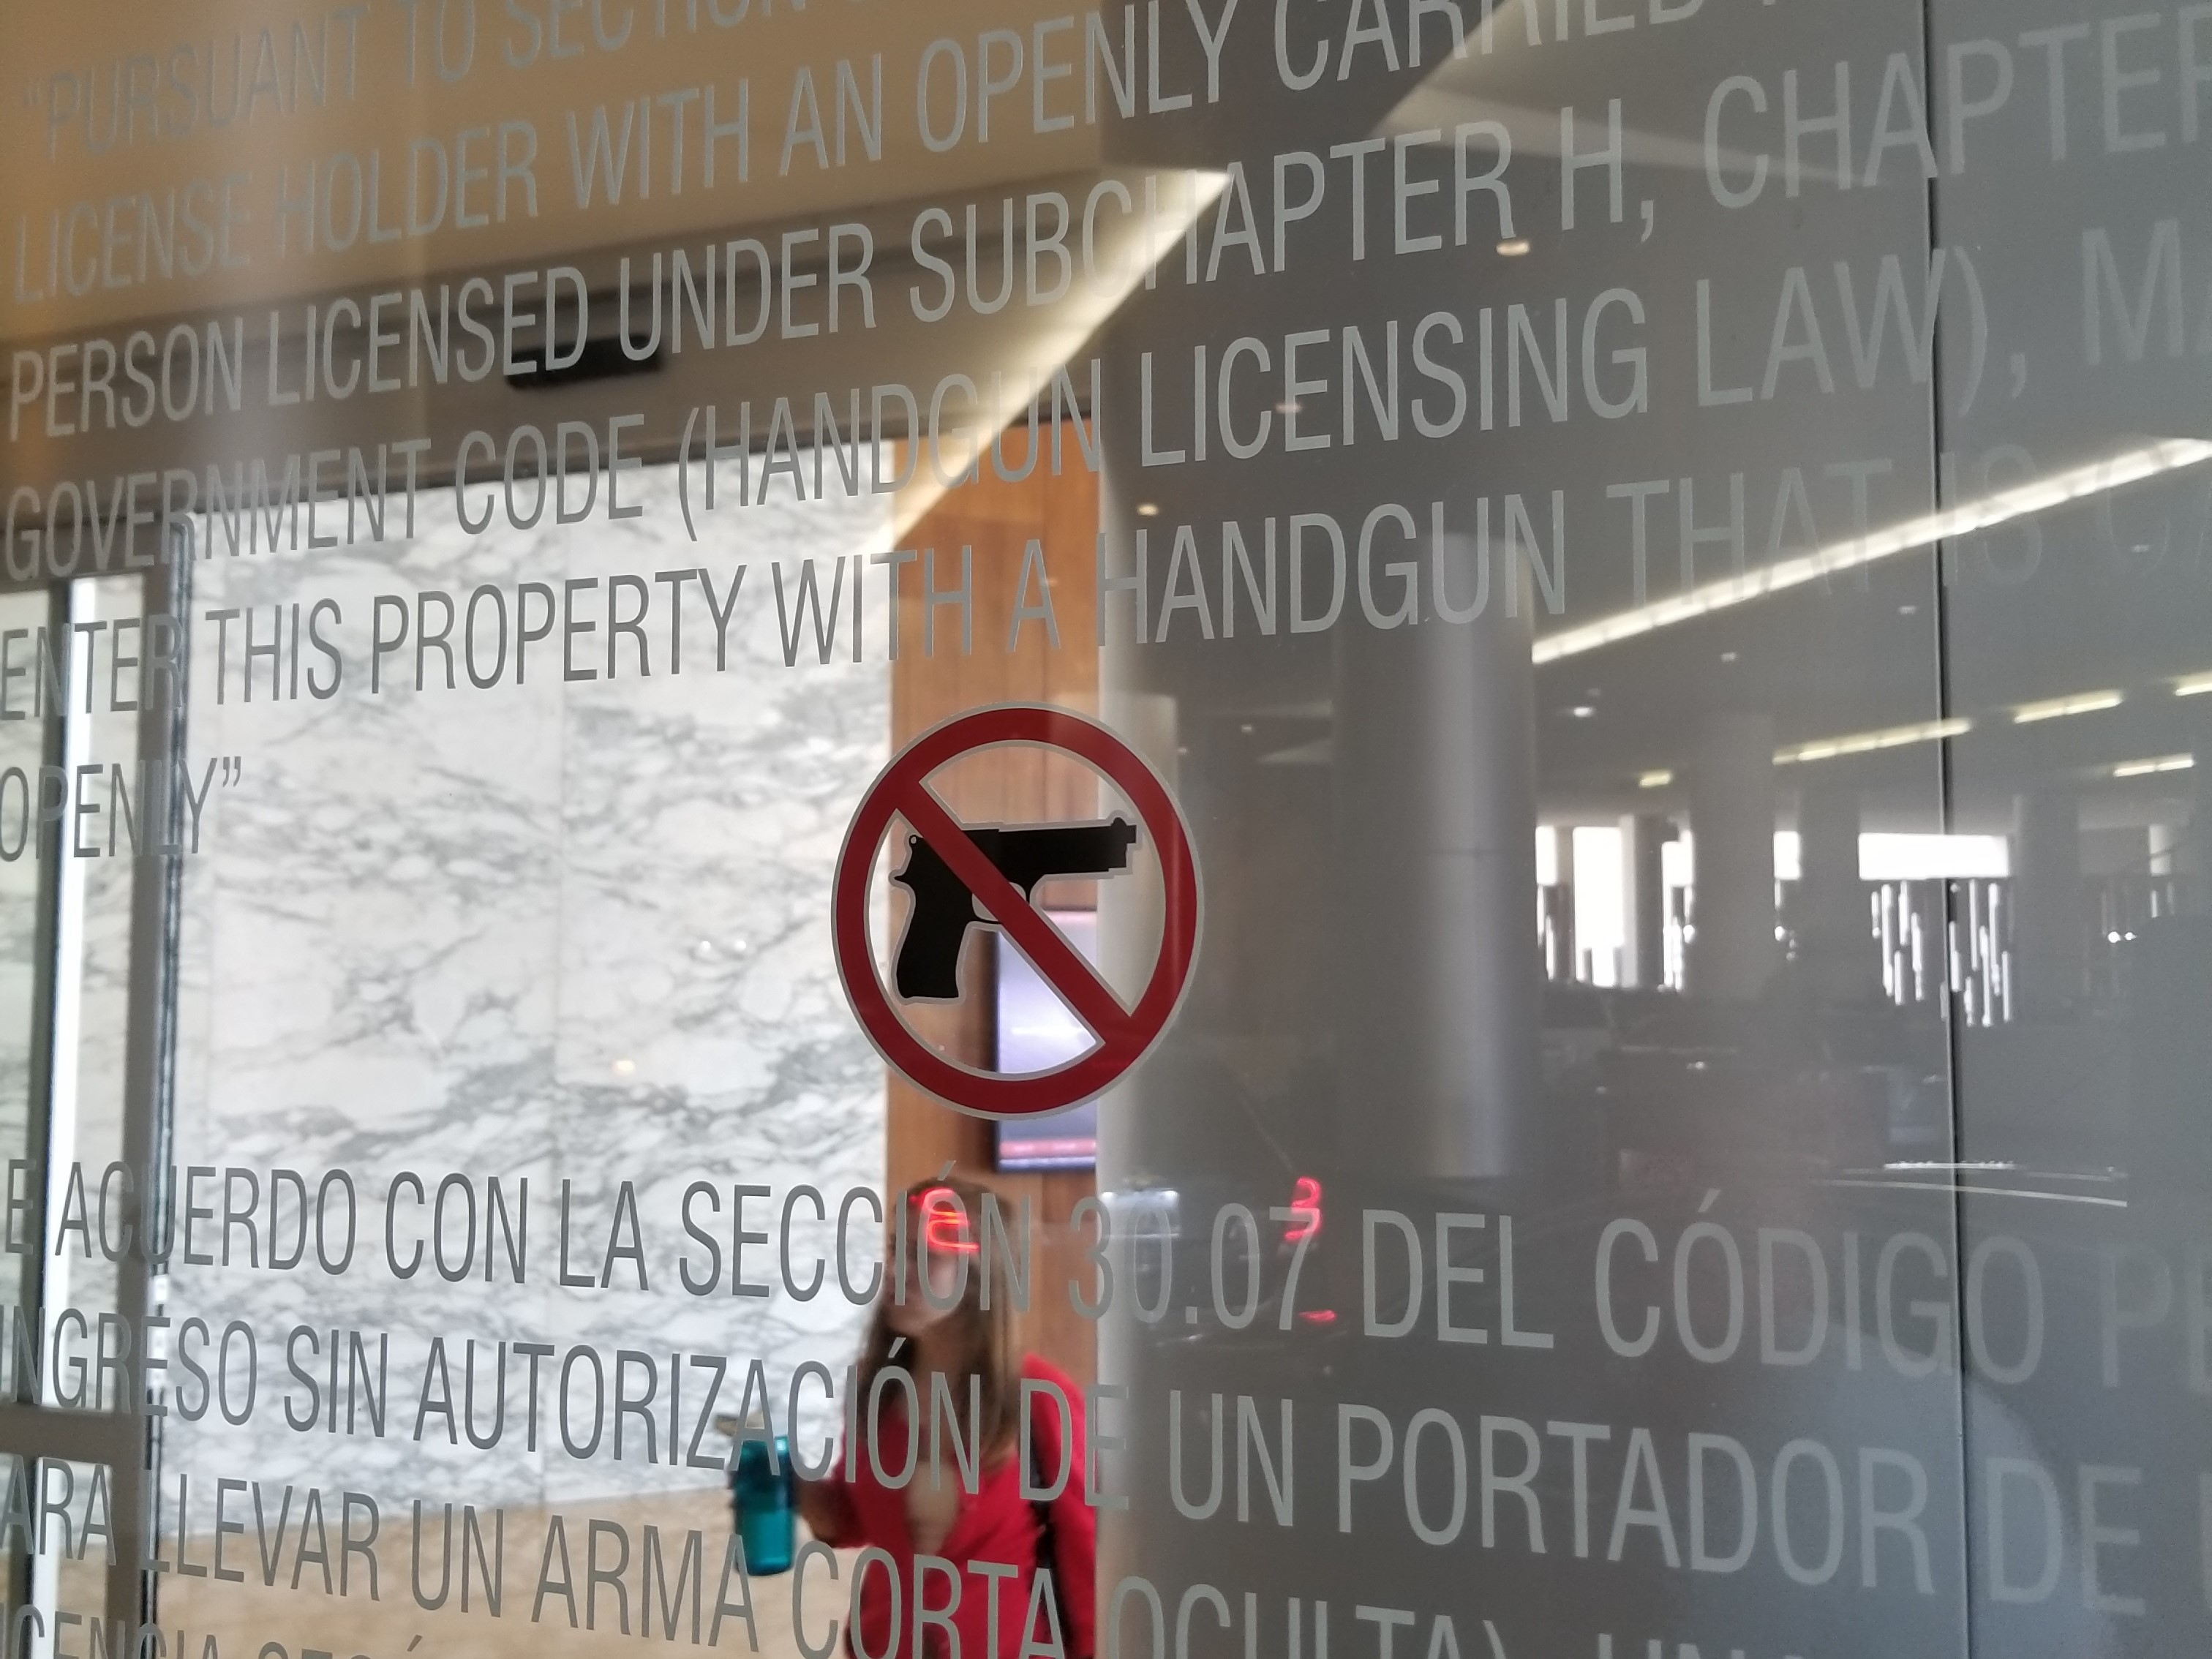 Texas Gop Convention Hotel Bans Open Carry And Some Gun Packing